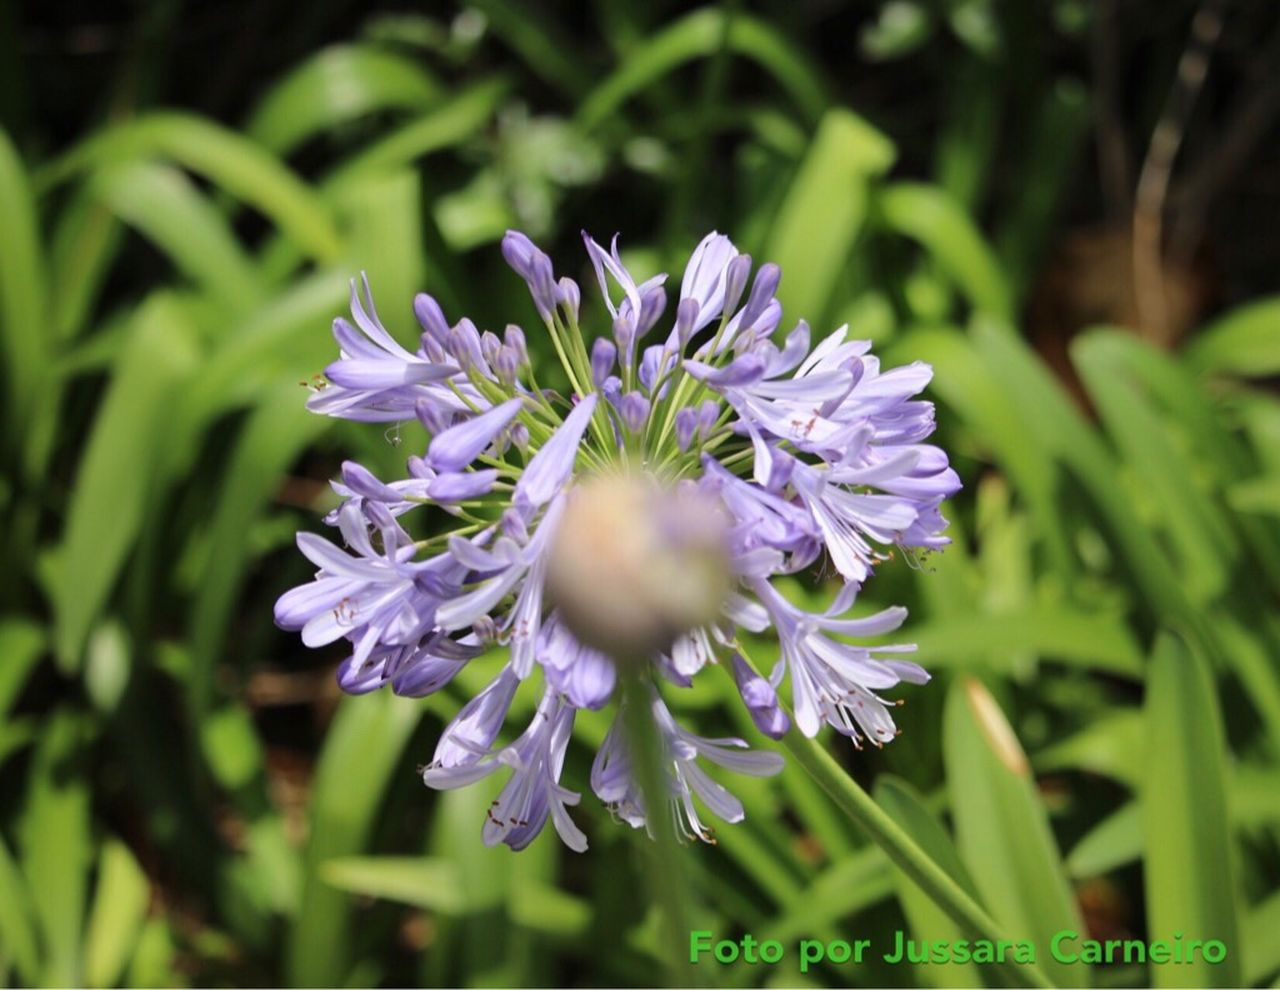 55-250mm Agapanthus Canon 70d Flower Close-up Agapanto Focus On Background